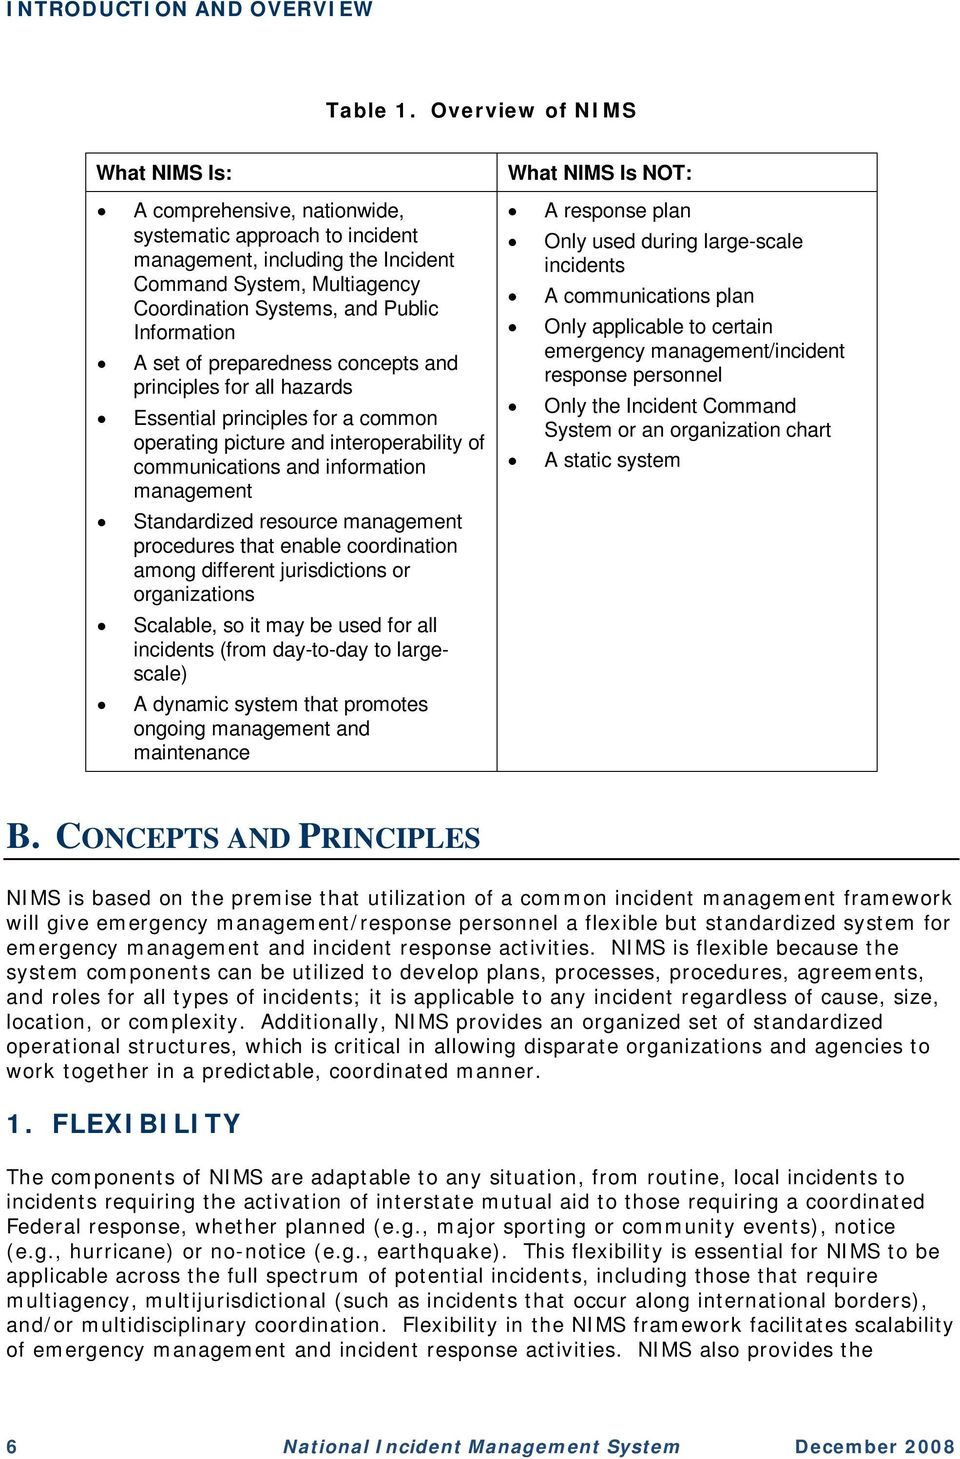 A set of preparedness concepts and principles for all hazards Essential principles for a common operating picture and interoperability of communications and information management Standardized